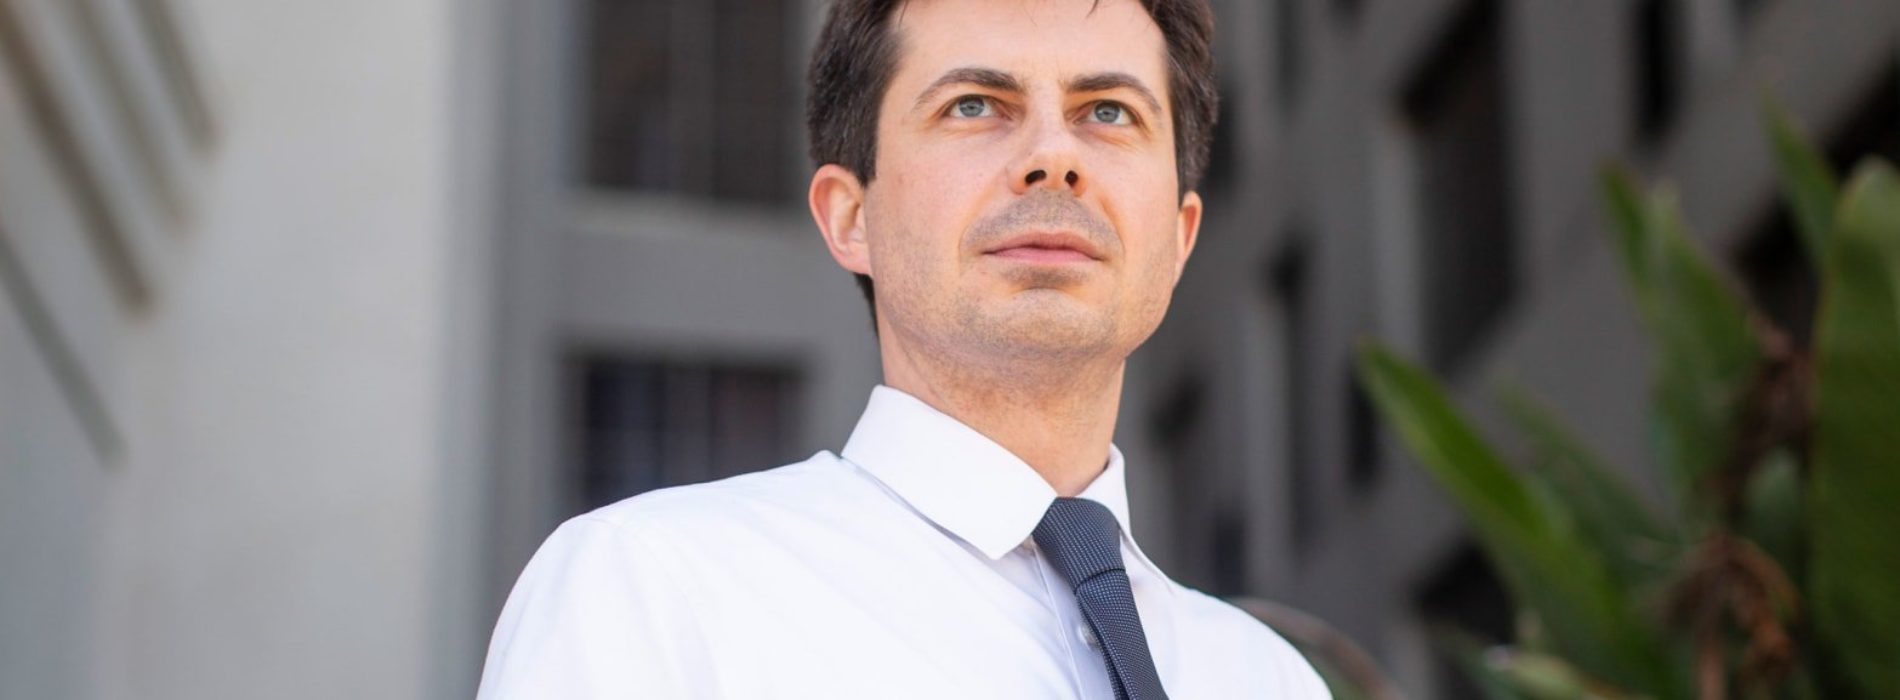 Mayor Pete Buttigieg Announces Bold Action Plan to Combat the National Threat Posed by Domestic Terror and the Gun Lobby